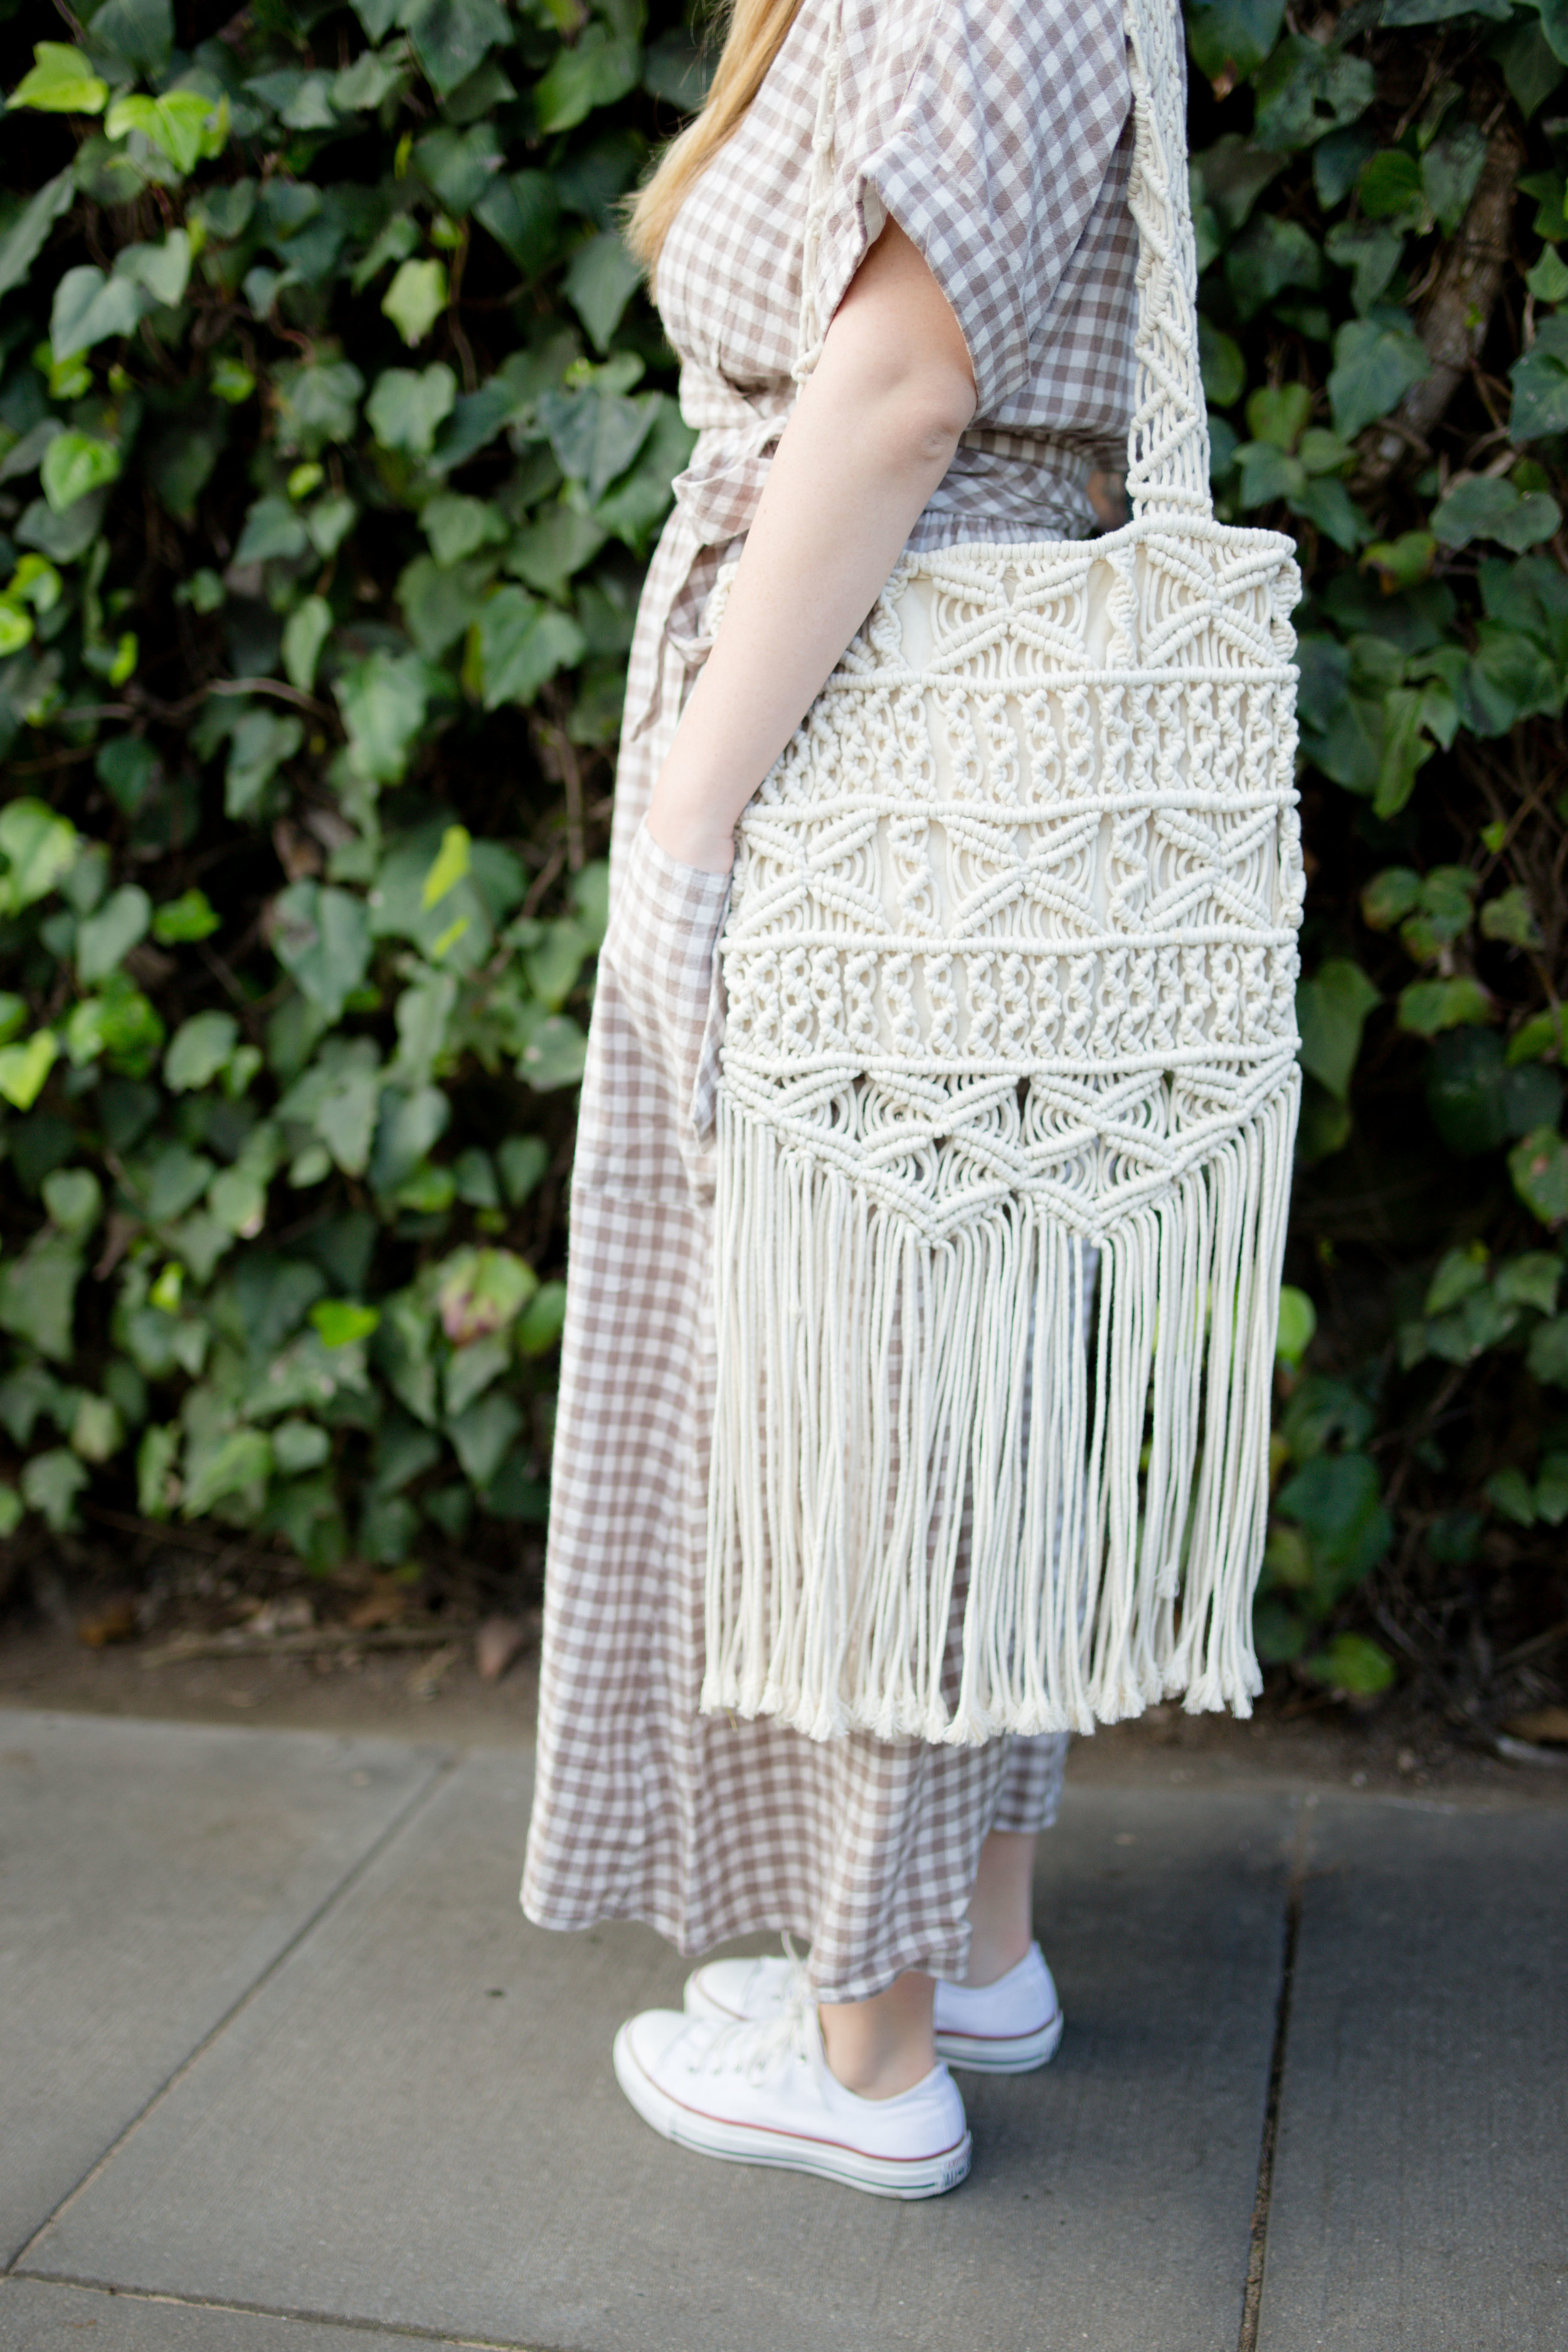 Streetstyle of Girl Wearing UO Gabrielle Linen Midi Wrap Dress and white converse chuck Taylors and macrame purse